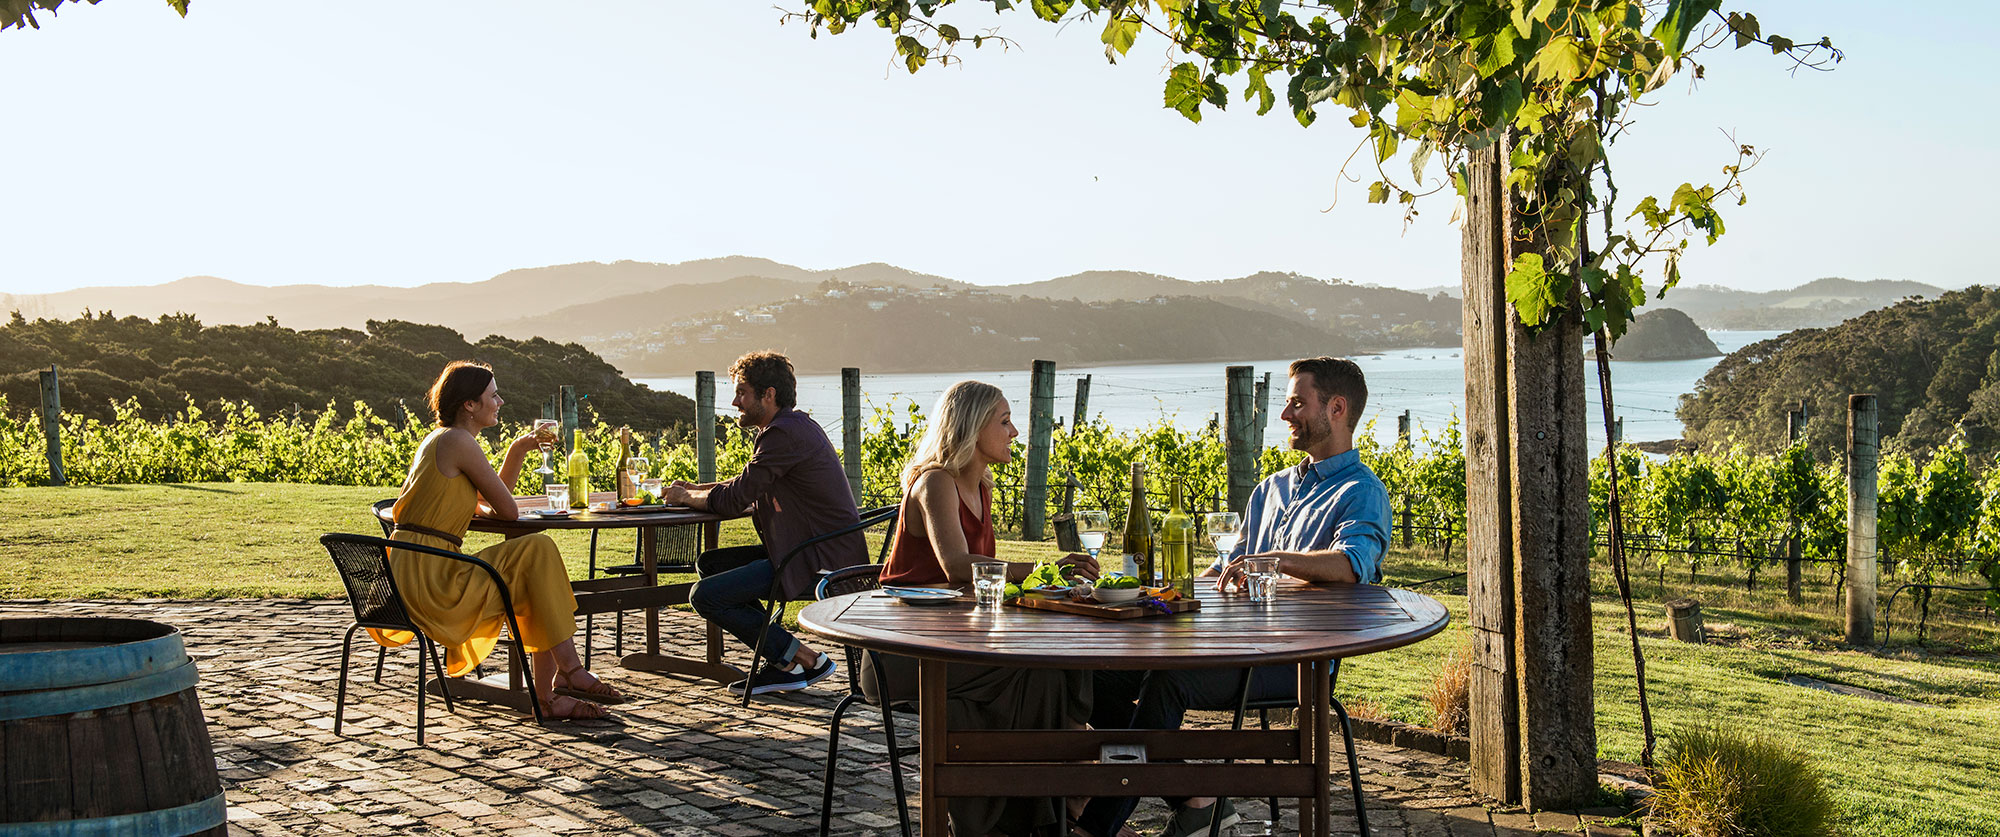 New Zealand Romantic Luxury Vacation - Wine and Dine in Bay of Islands